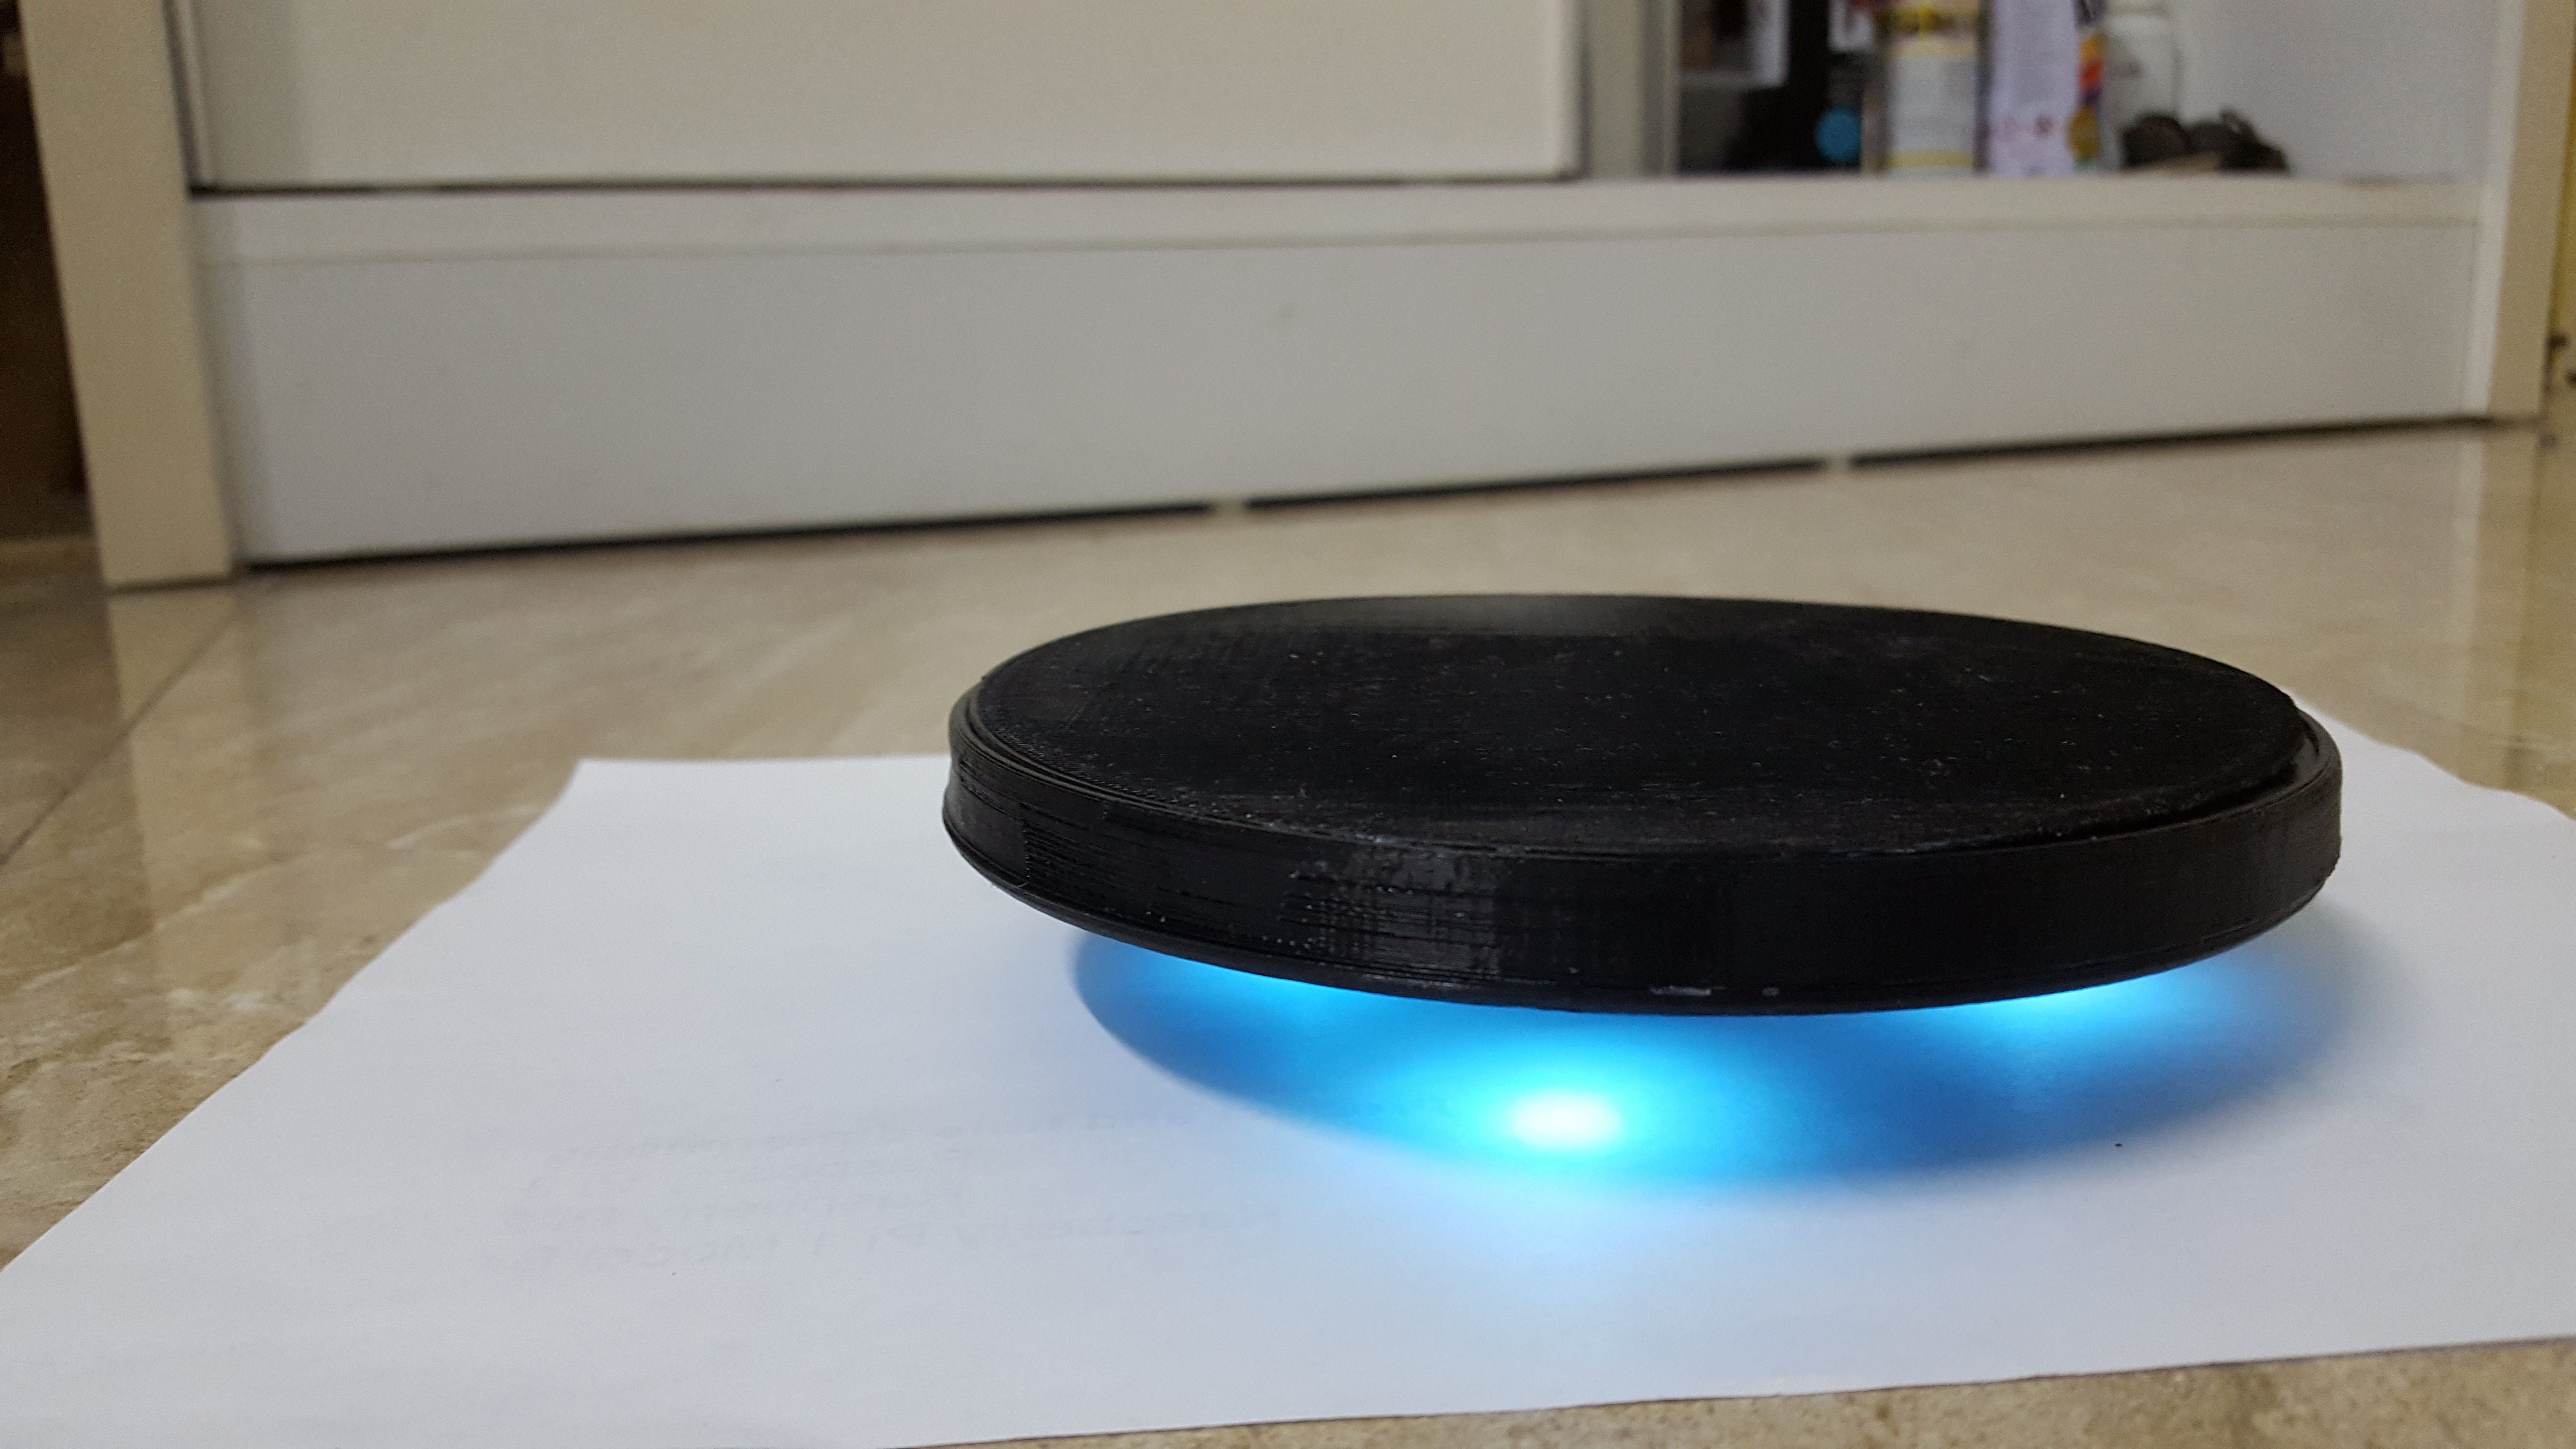 Picture of Floating Charging Pad